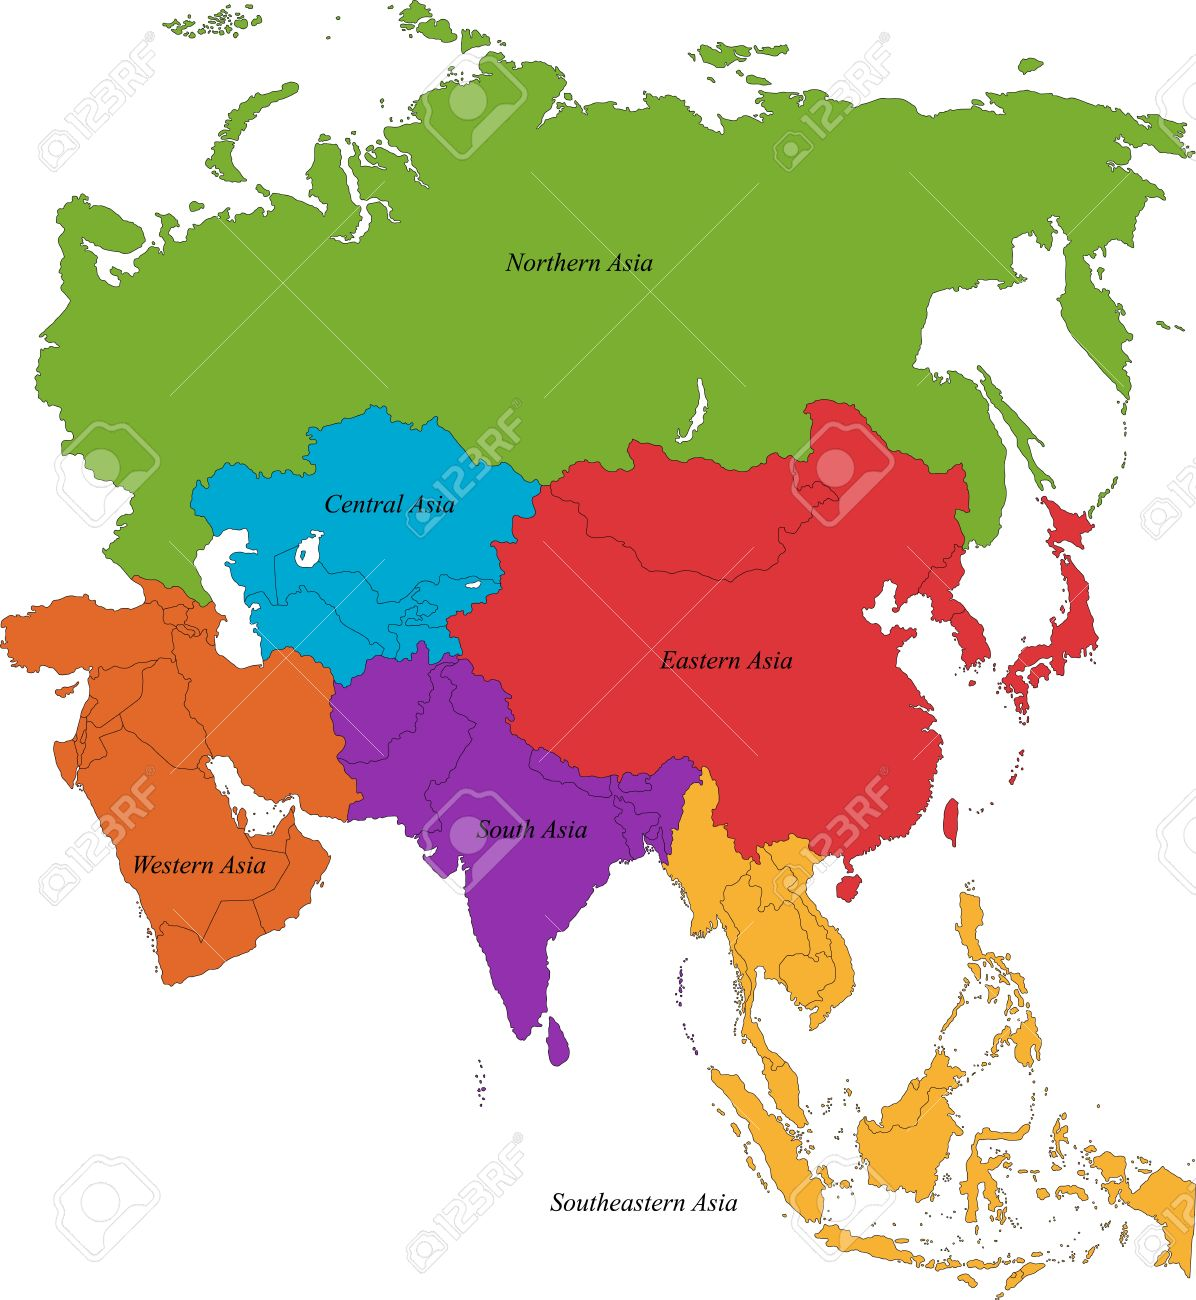 Map Of Asia With Regions.Colorful Asia Map With Six Regions